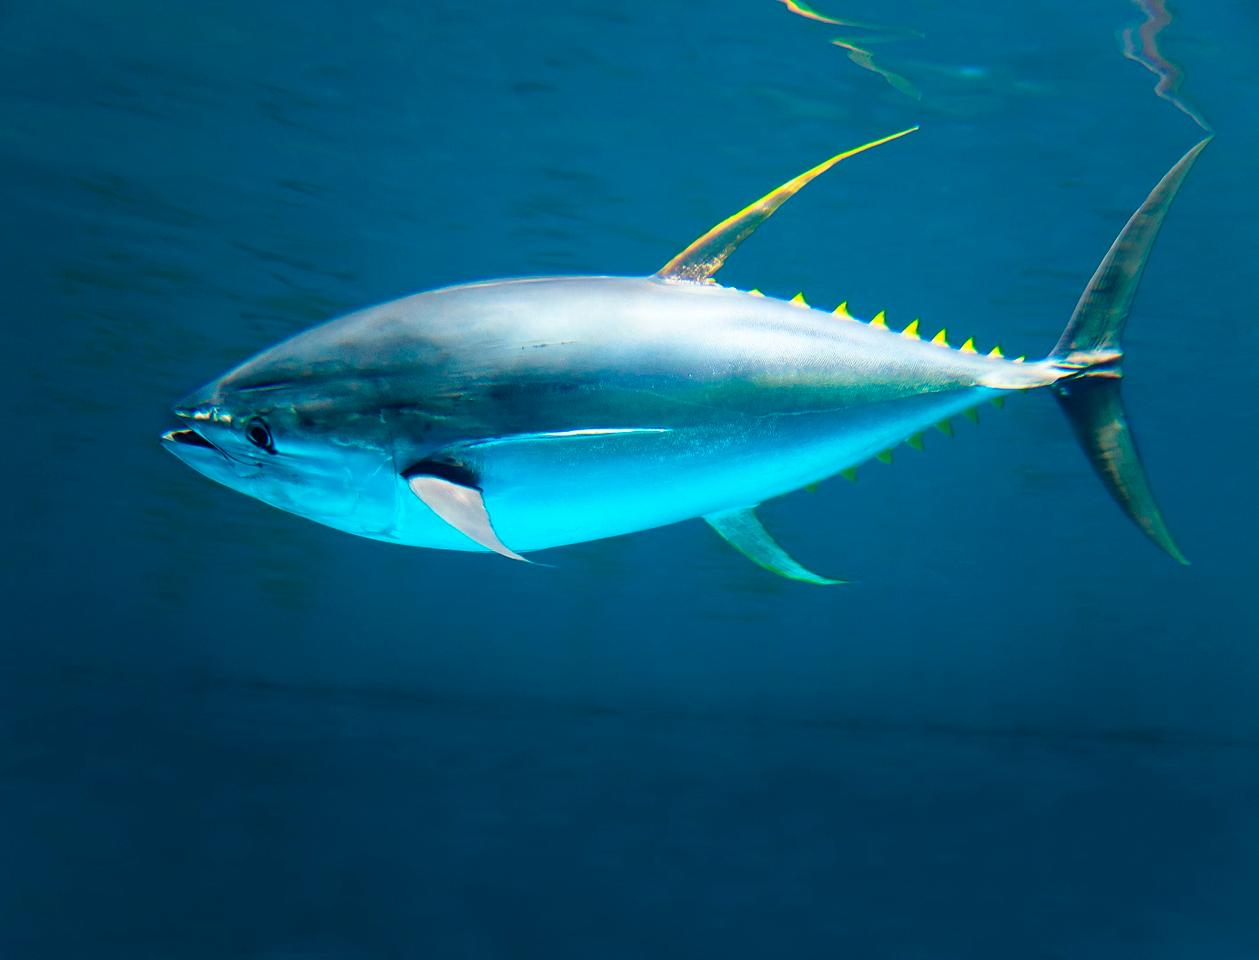 The team studiedtuna, such as the yellowfin, as part of their study